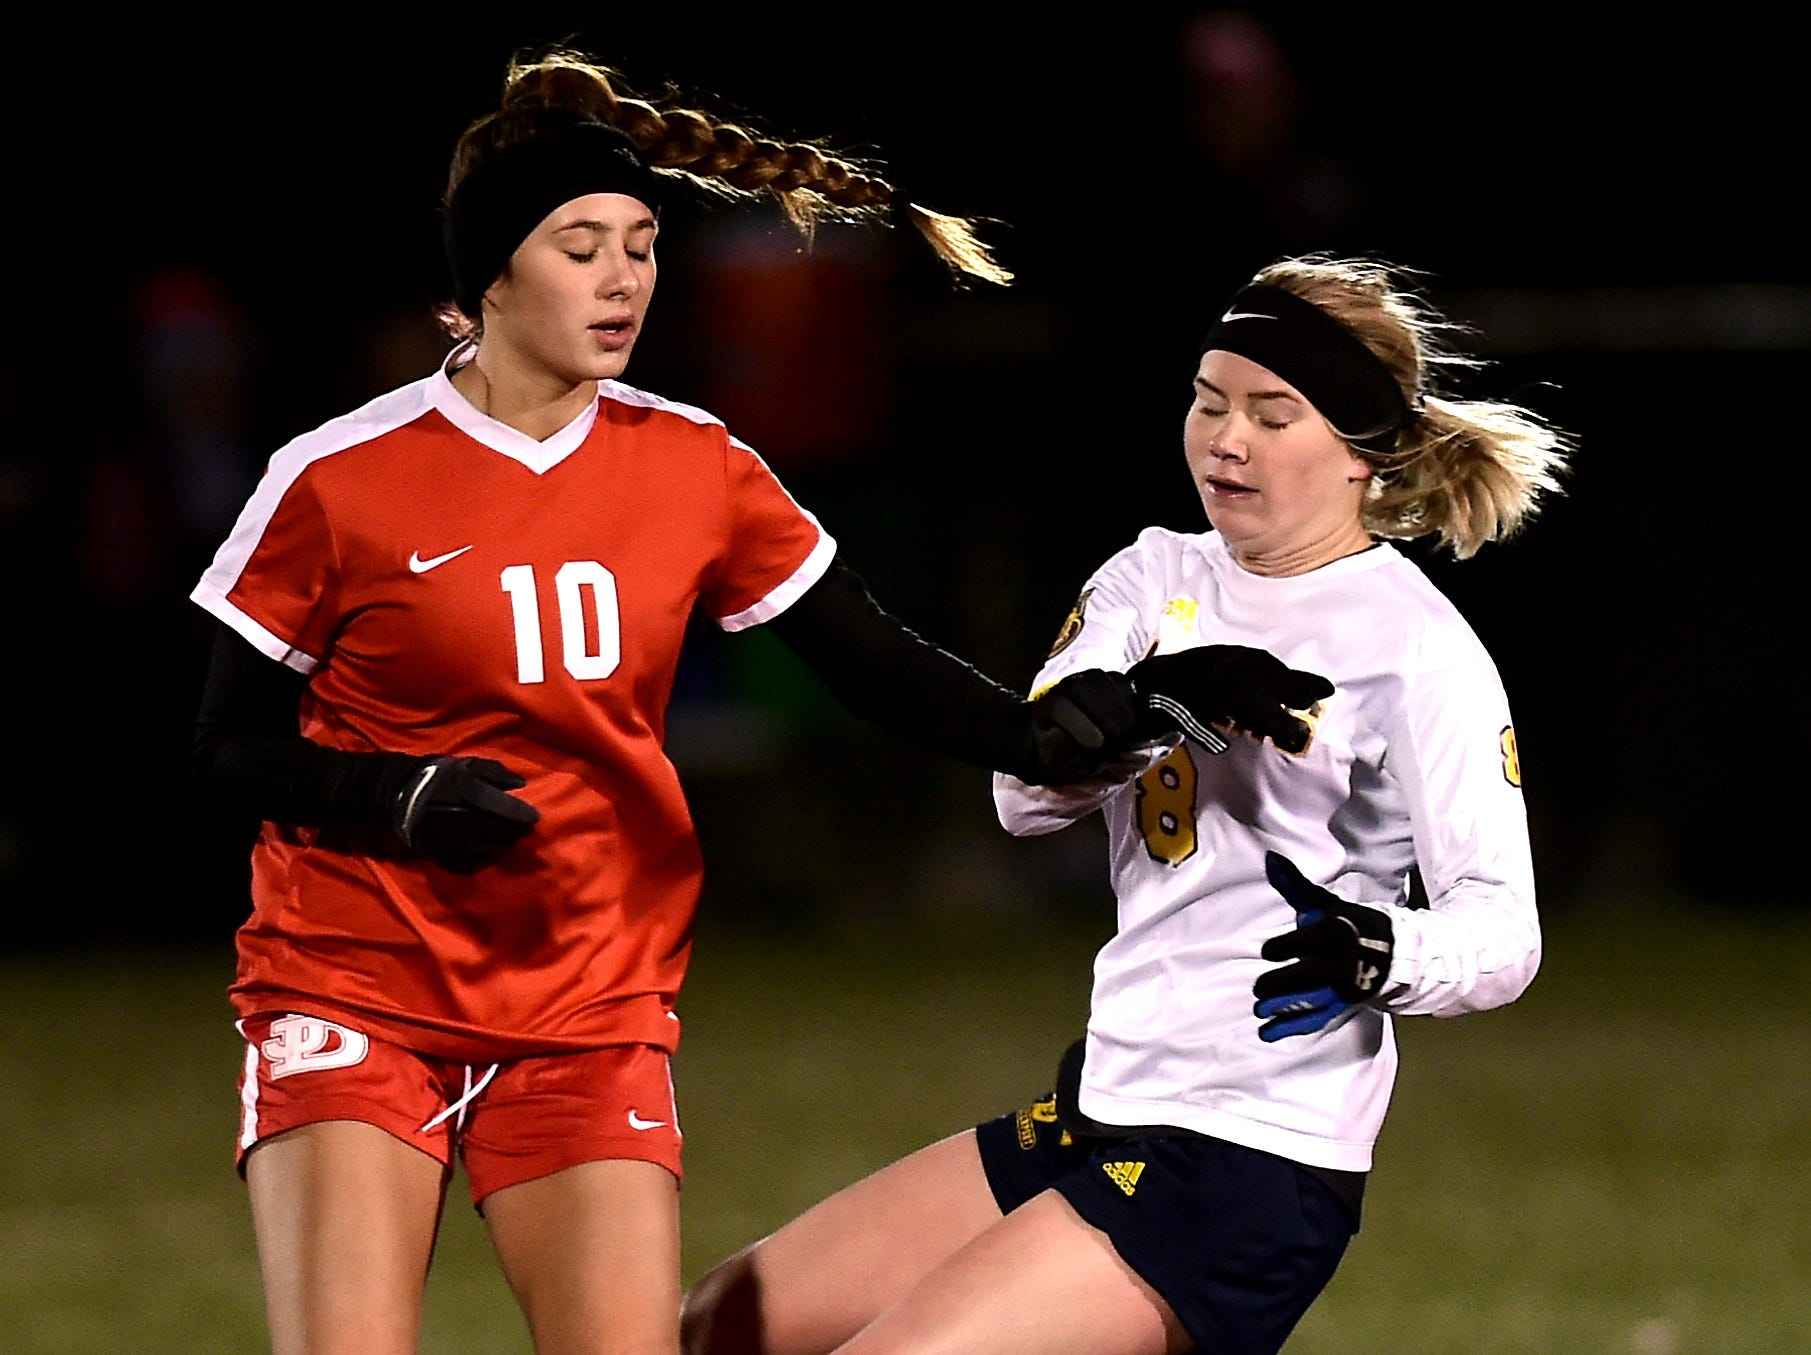 Spencerport vs. Jamesville-DeWitt, Class A, NYSPHSAA Girls Soccer Championship semifinal, Tompkins Cortland Community College, Dryden, NY. Saturday, November 10, 2018.